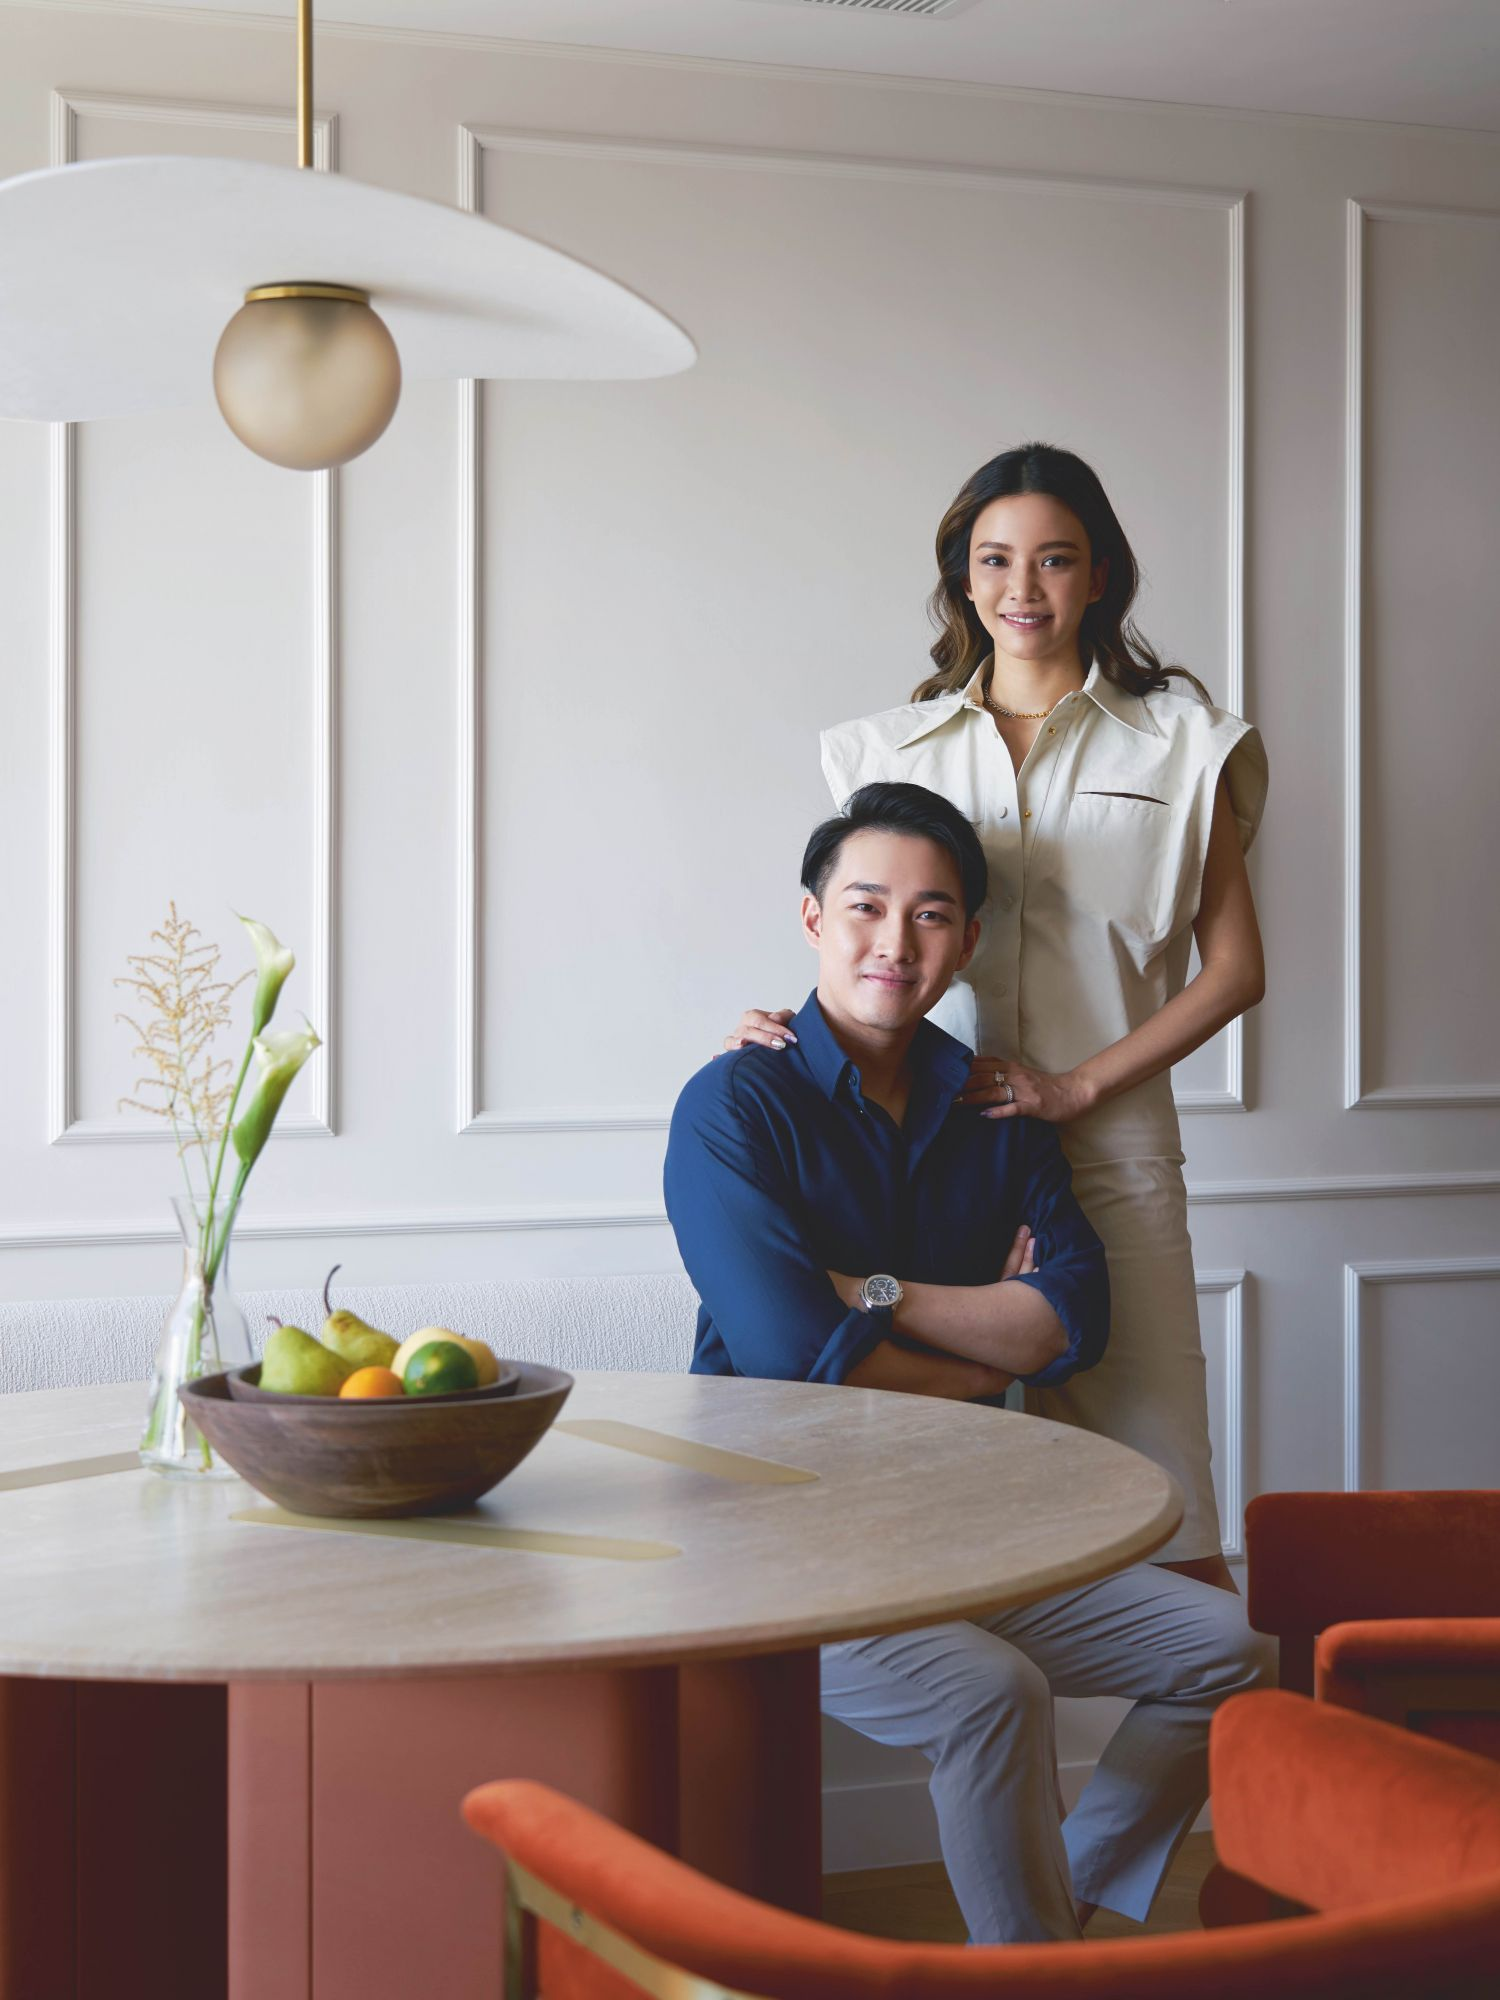 Home Tour: This Colourful Abode Was Inspired by the Couple's Favourite Restaurant in Hong Kong